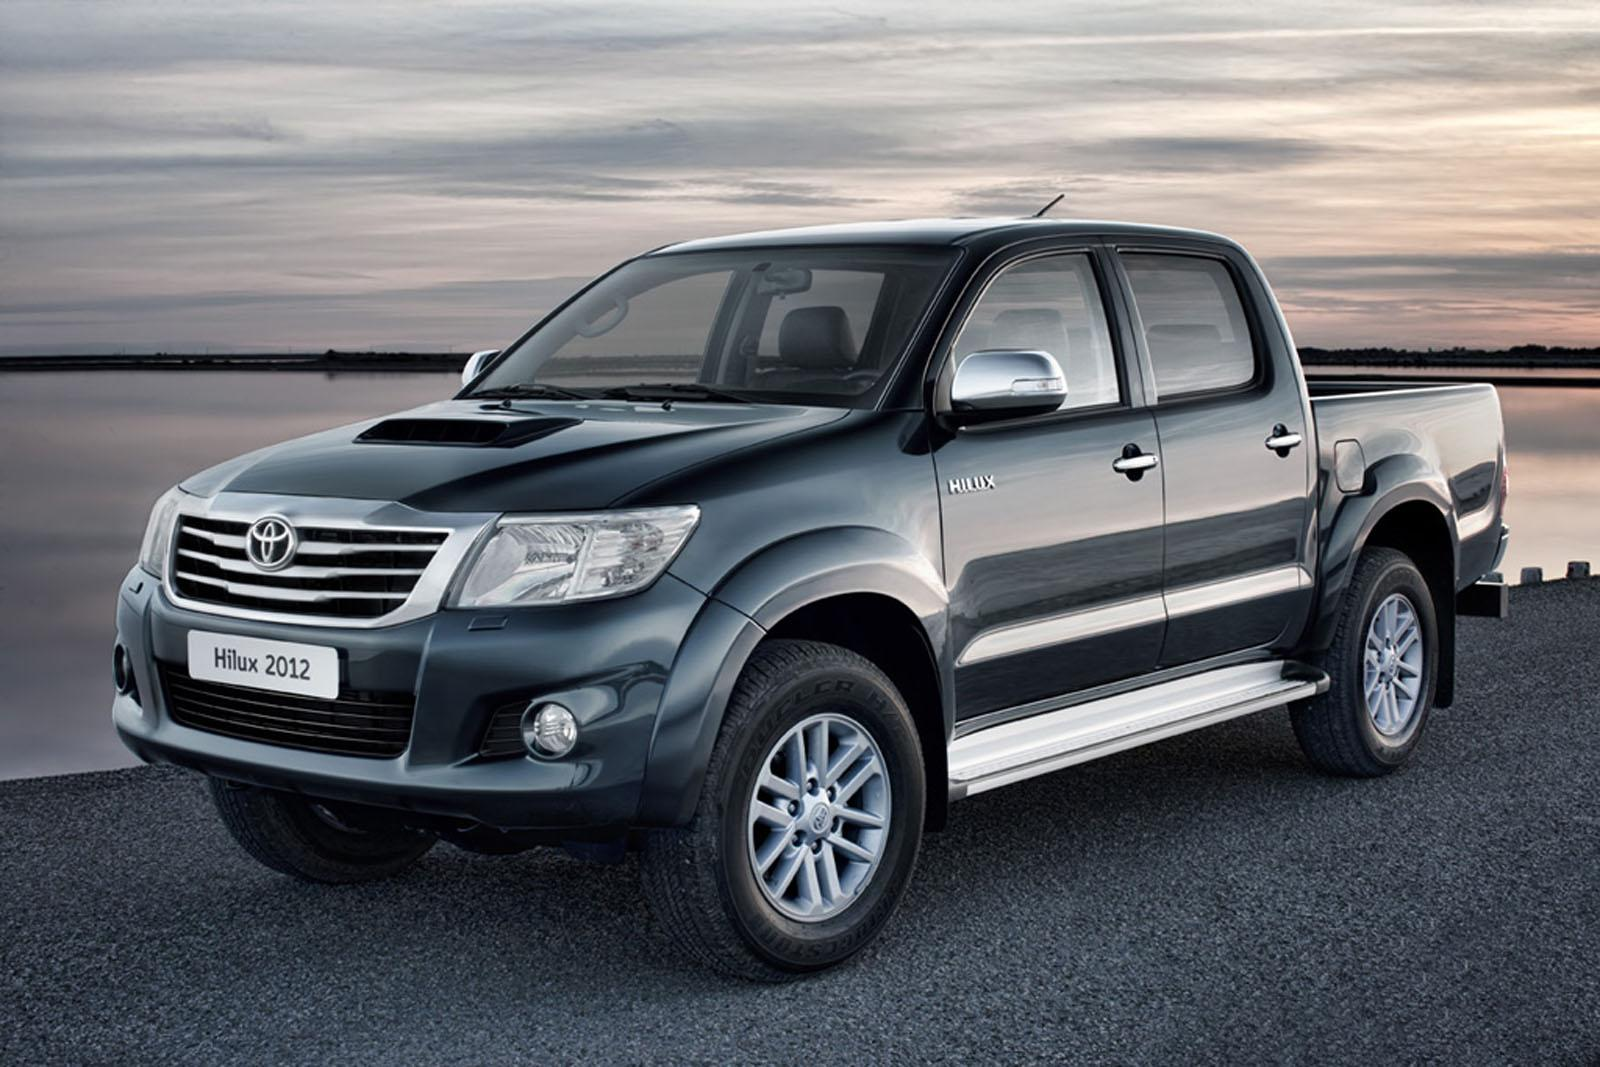 2010 toyota hilux pictures cargurus. Black Bedroom Furniture Sets. Home Design Ideas